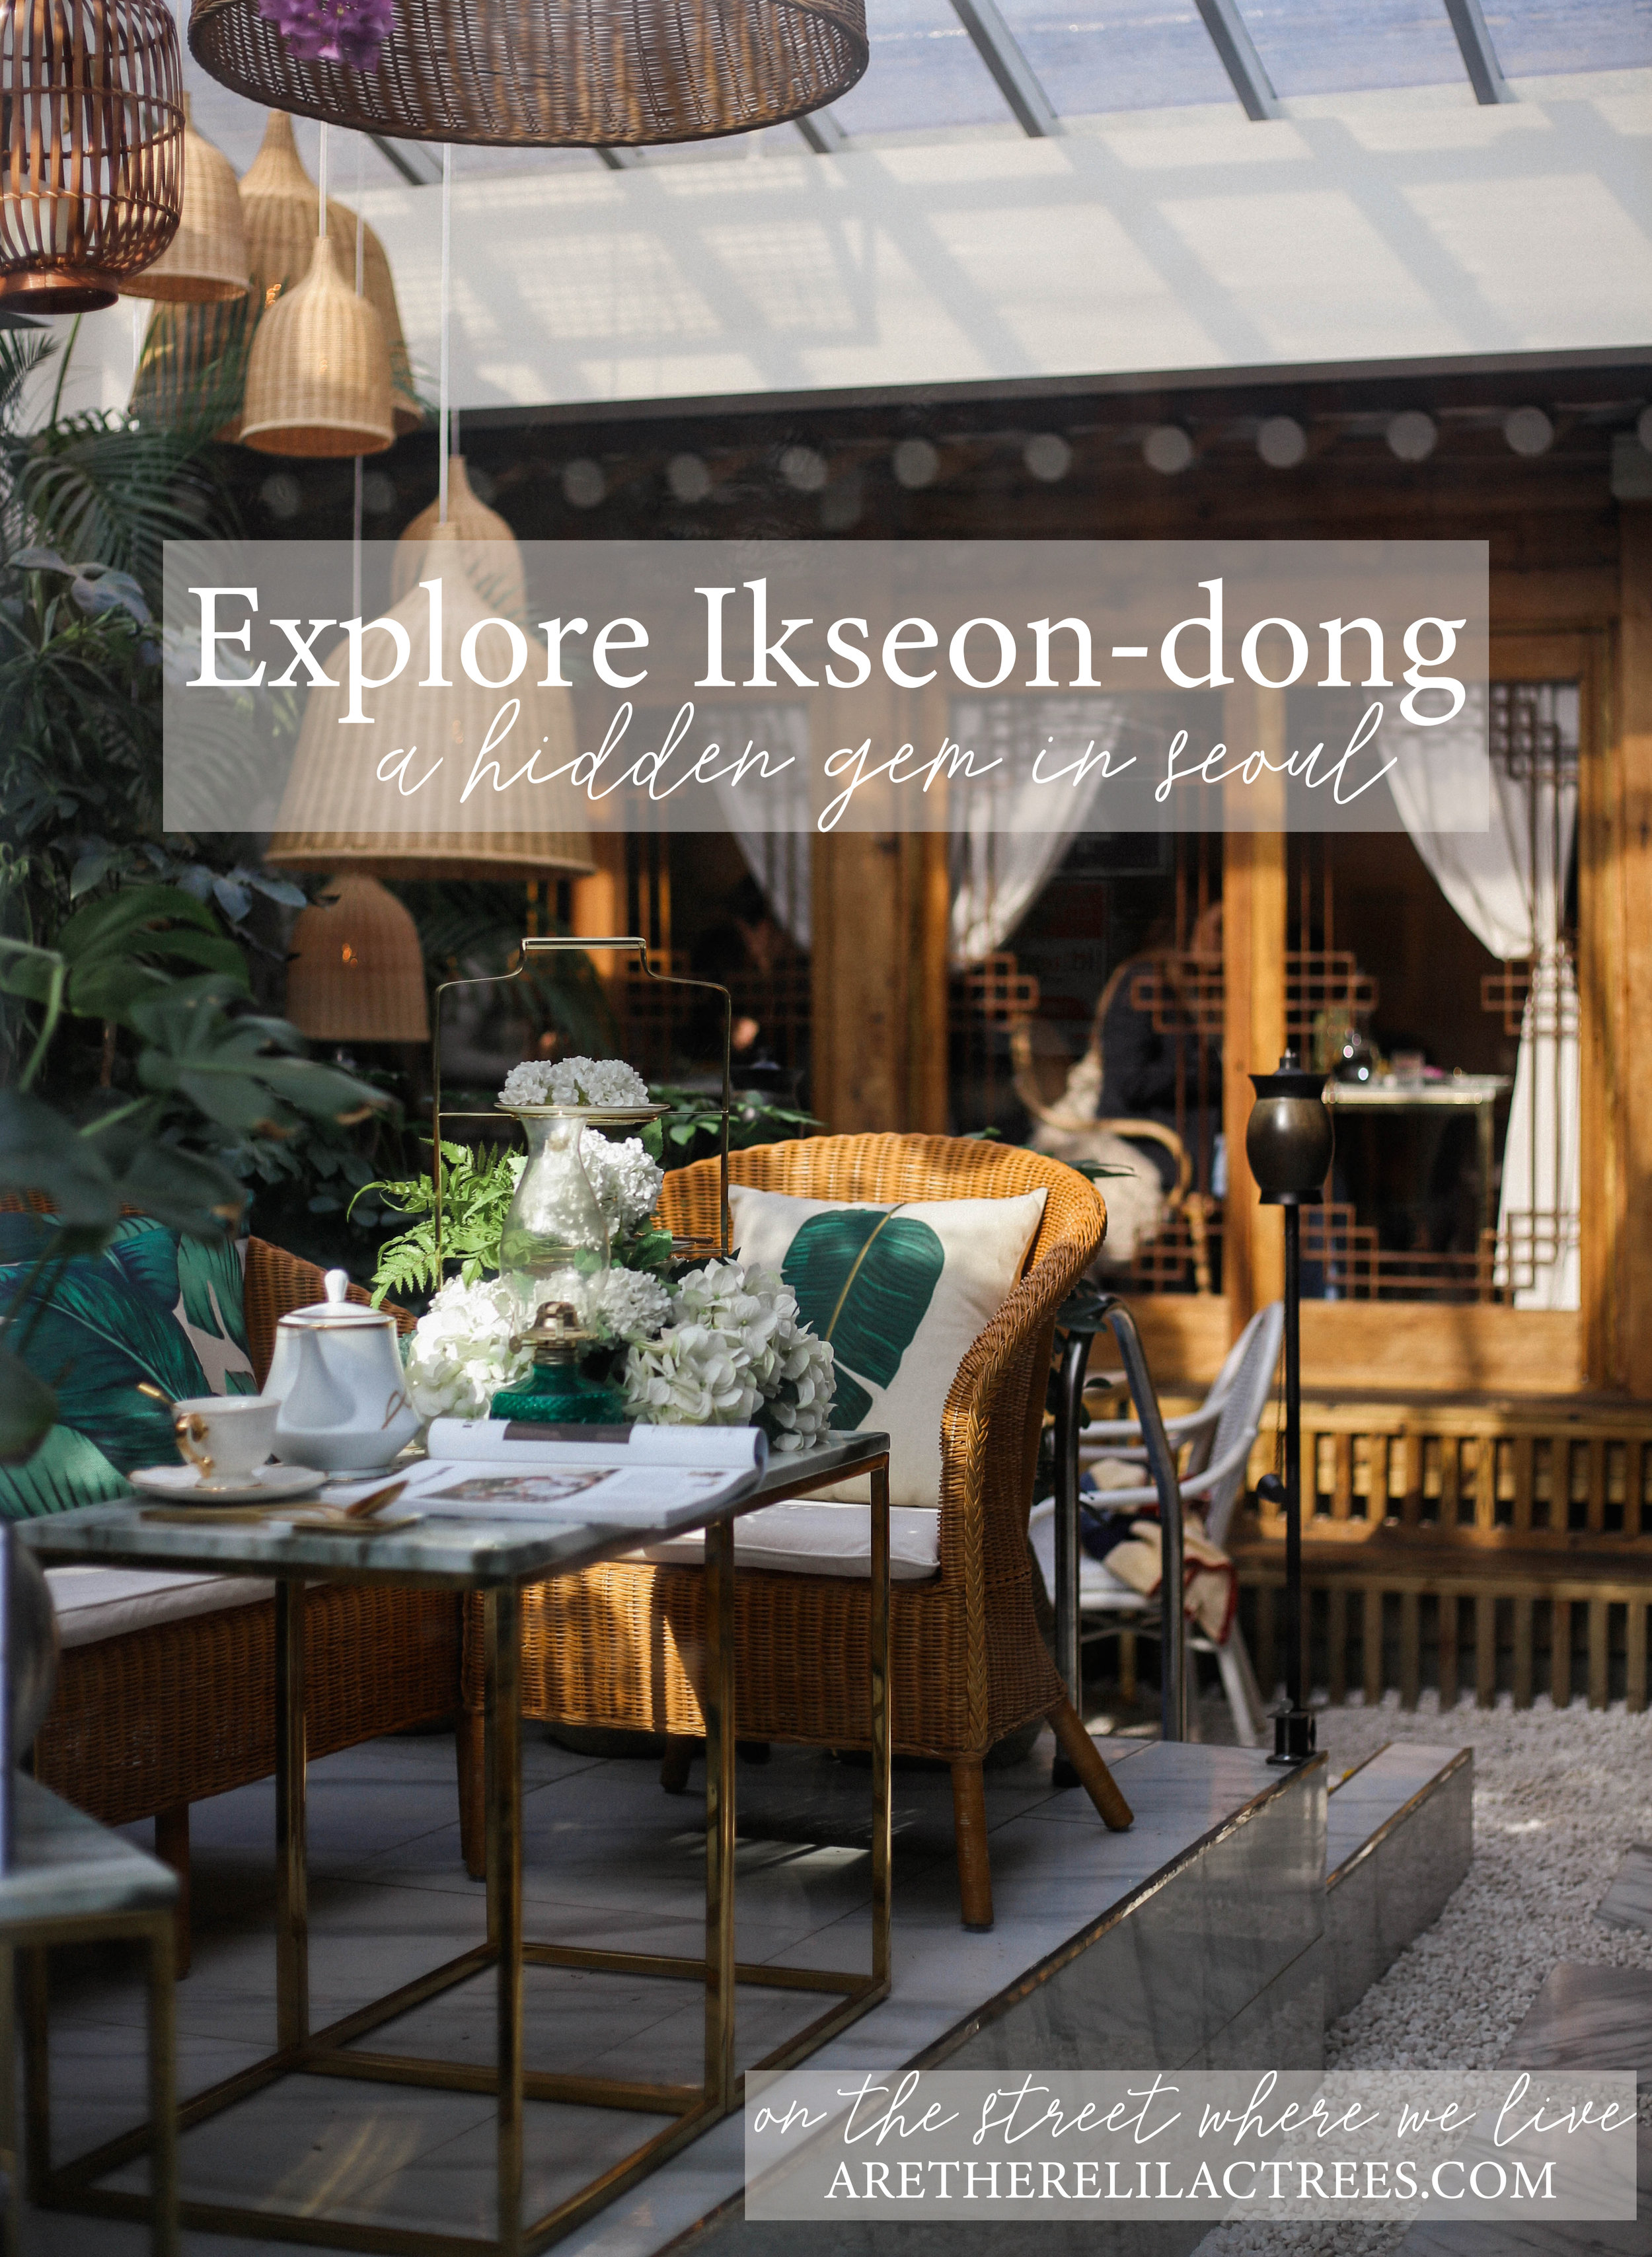 Explore Ikseon-dong, A Hidden Gem in Seoul | On the Street Where We Live ( aretherelilactrees.com )